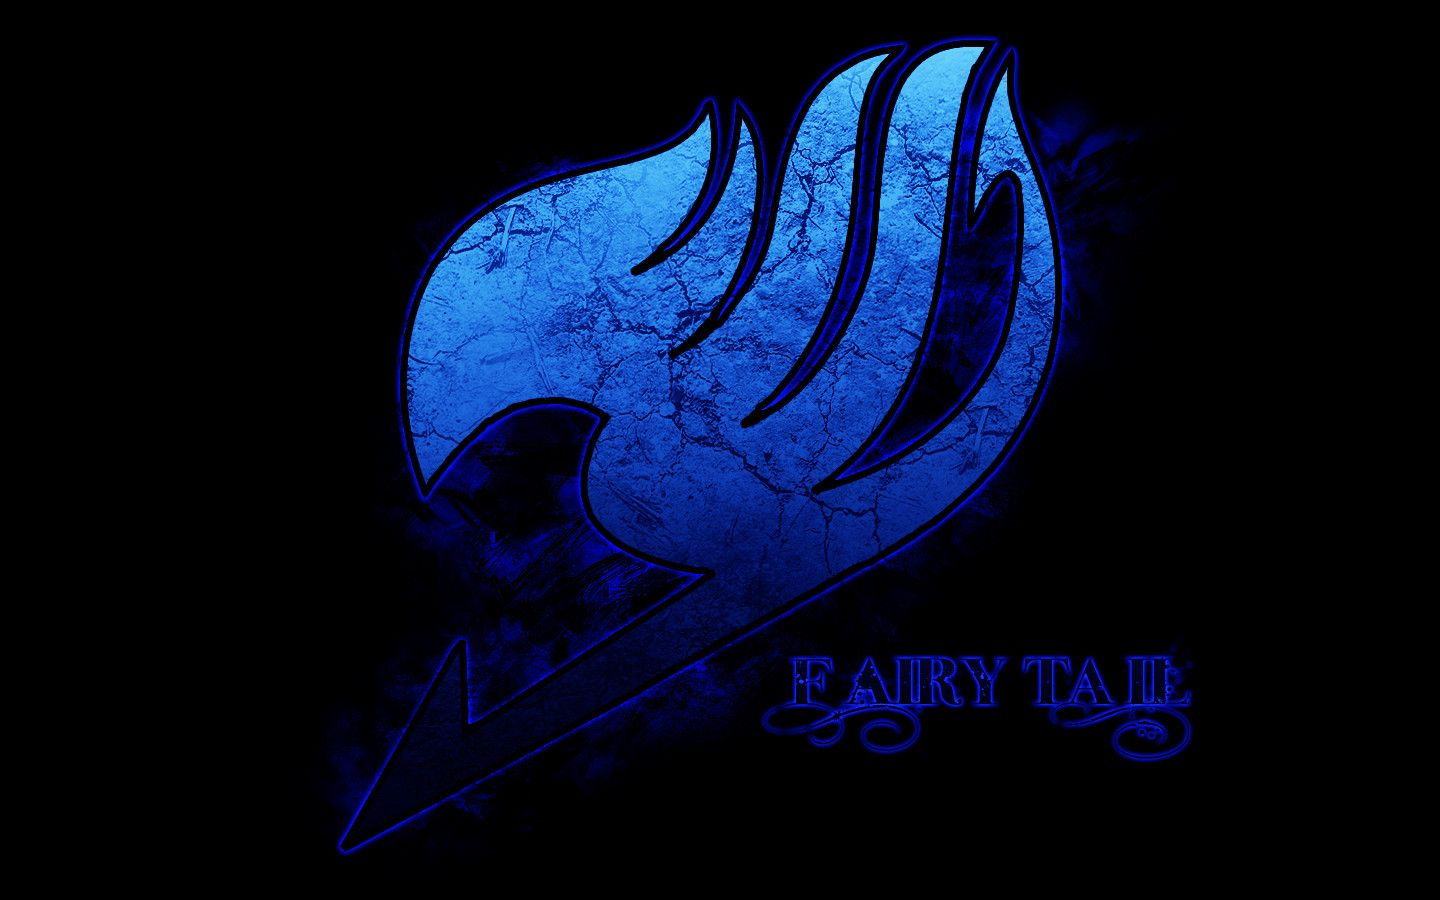 Fairy tail blue logo wallpaper fairy tail pinterest fairy fairy tail blue logo wallpaper biocorpaavc Image collections